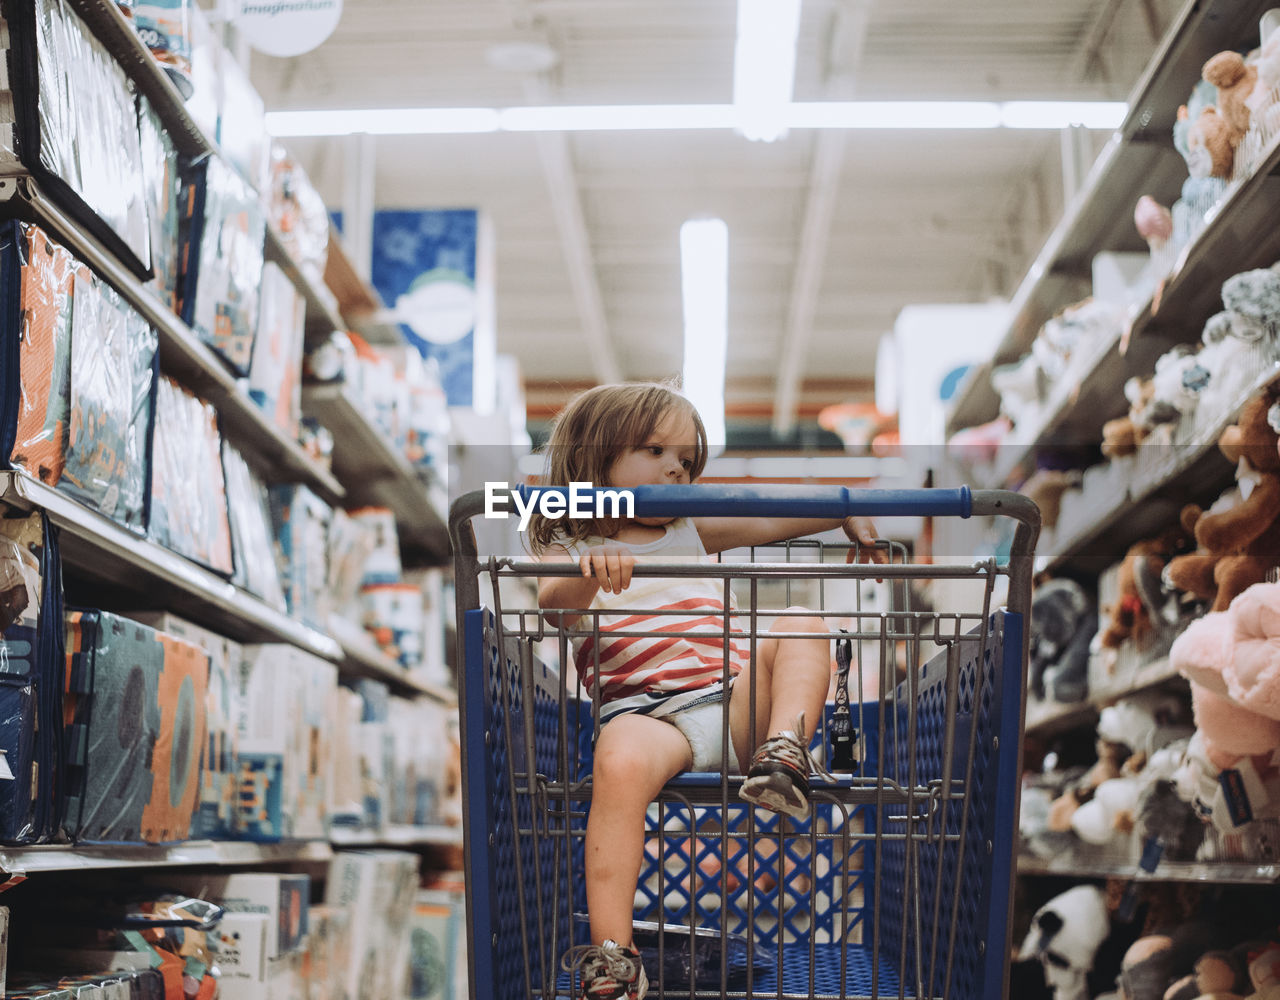 one person, real people, childhood, lifestyles, indoors, store, child, casual clothing, shelf, retail, leisure activity, standing, shopping, women, choice, hairstyle, looking, consumerism, bangs